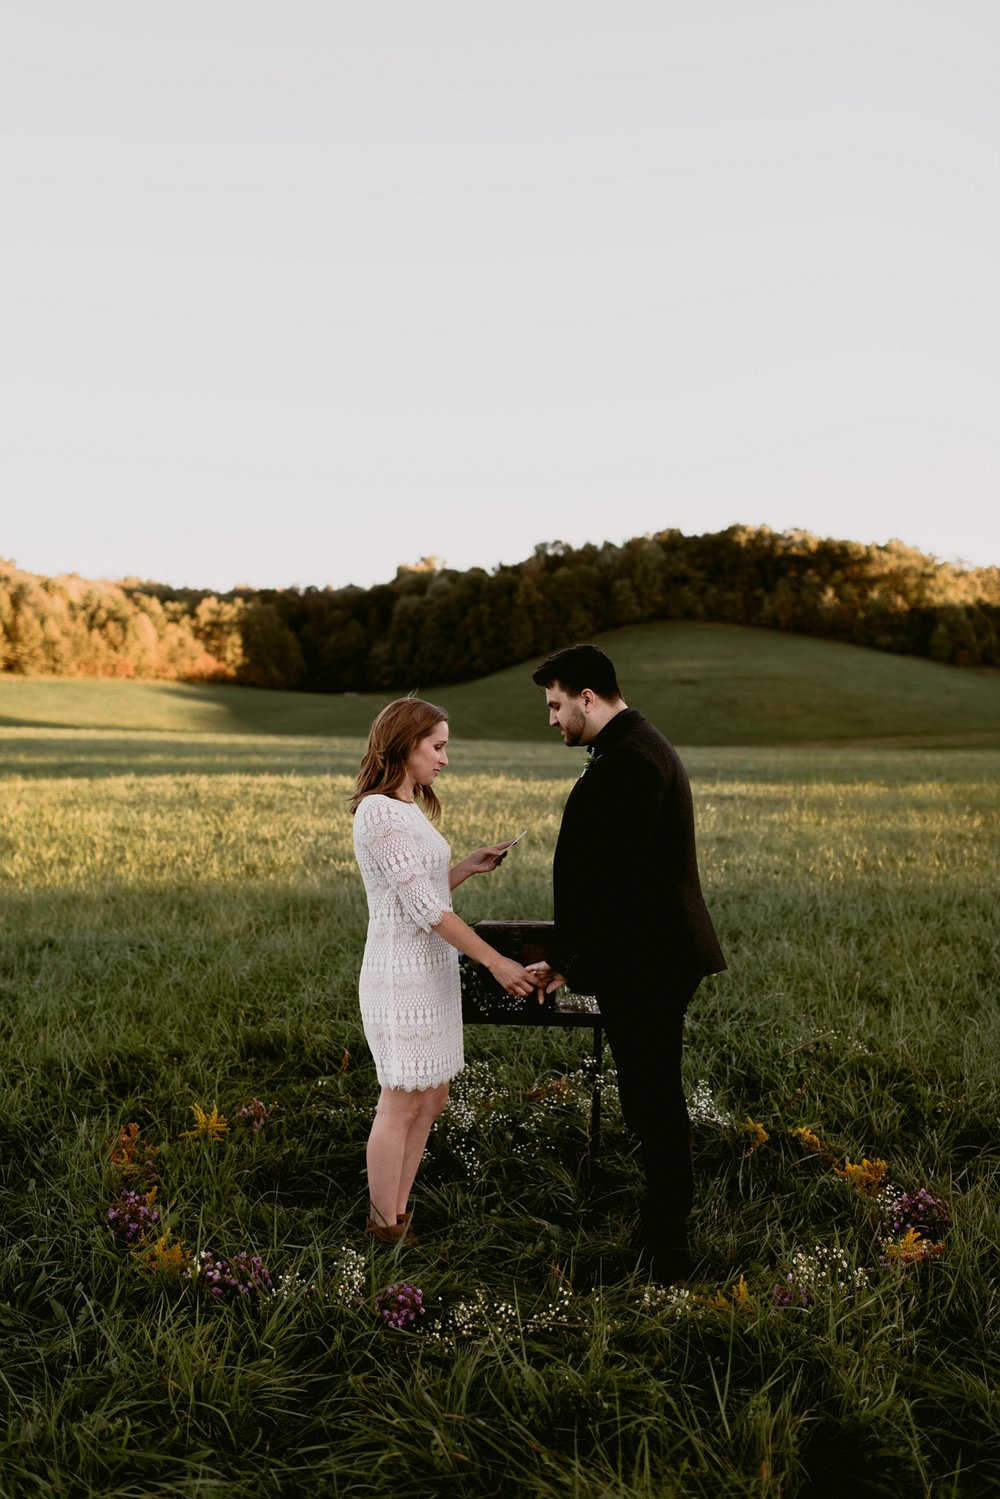 Wildflower-Field-Elopement-Vow-Renewal_Lisa+Chad_MJPHOTO-171.JPG